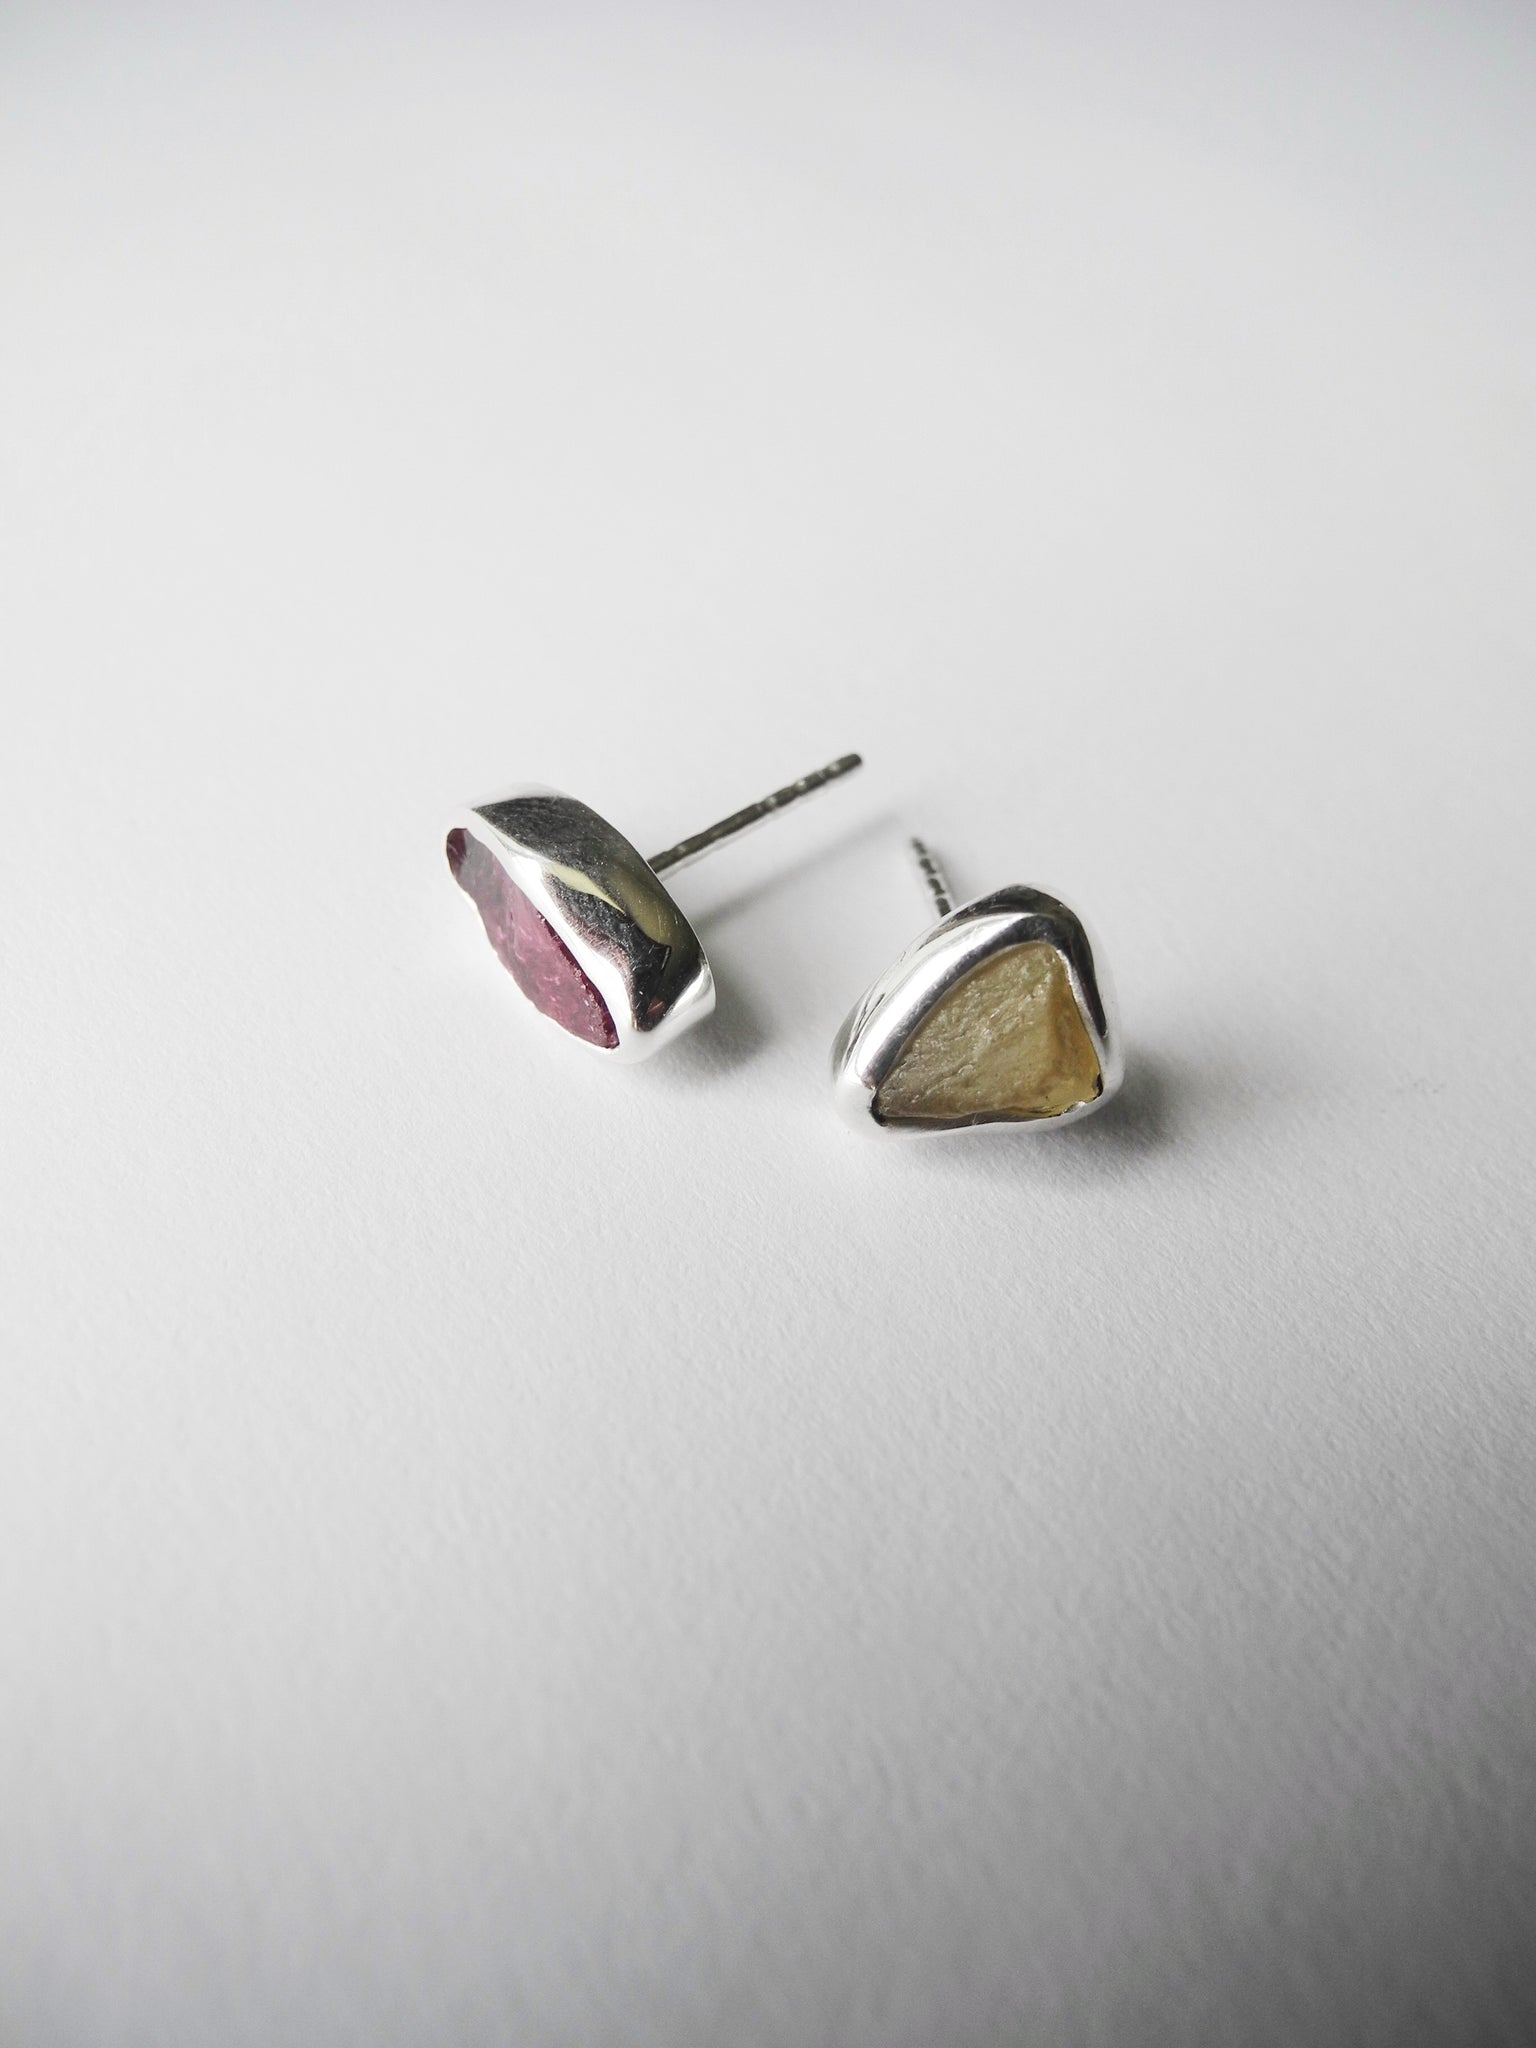 garnet and yellow apatite studs